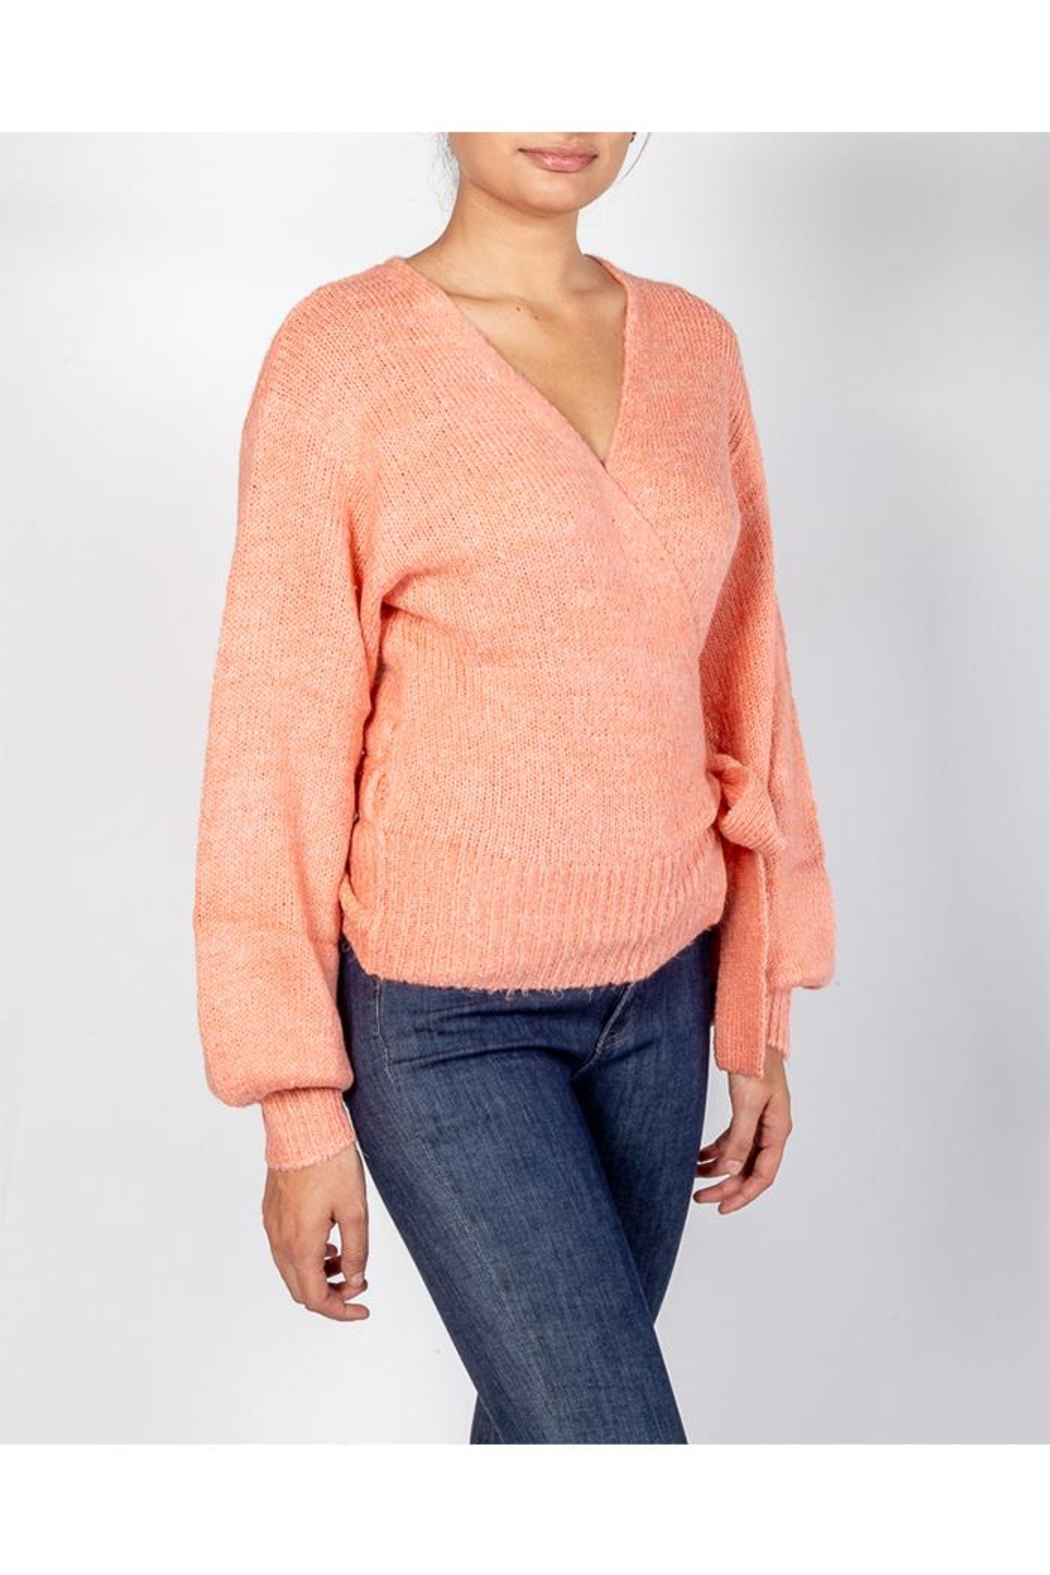 Cotton Candy Coral Wrap Sweater - Front Full Image